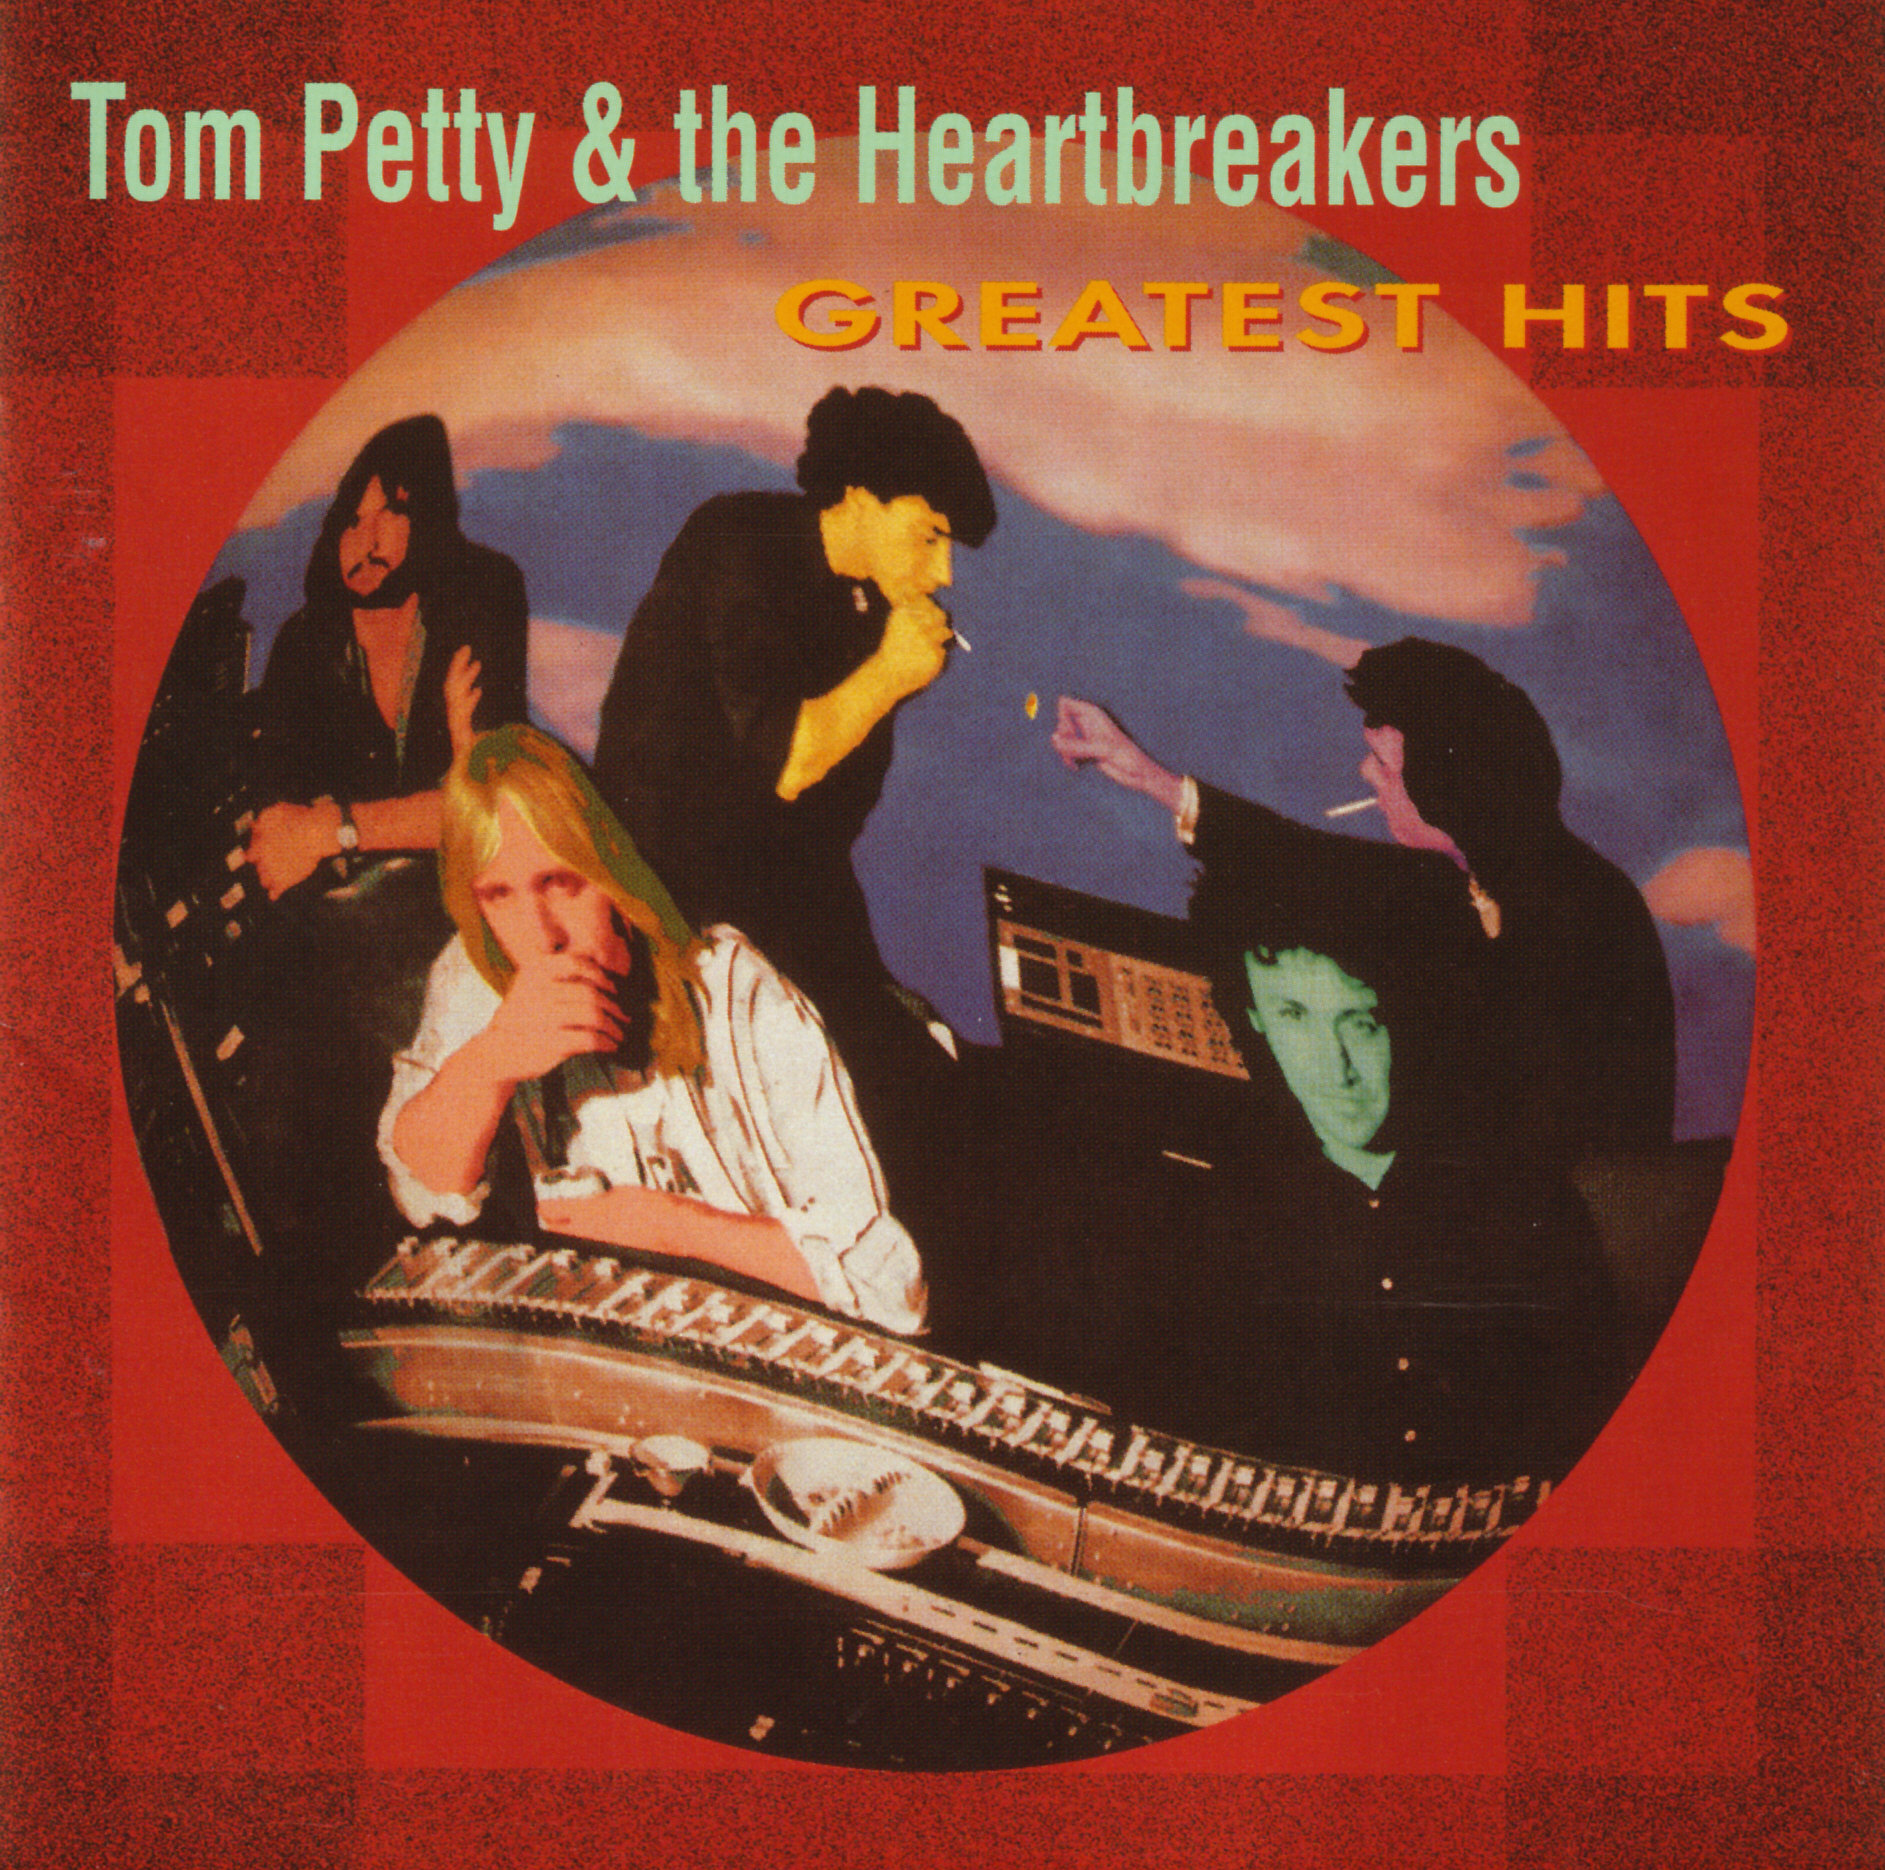 Tom Petty on the Heartbreakers' 'Greatest Hits'